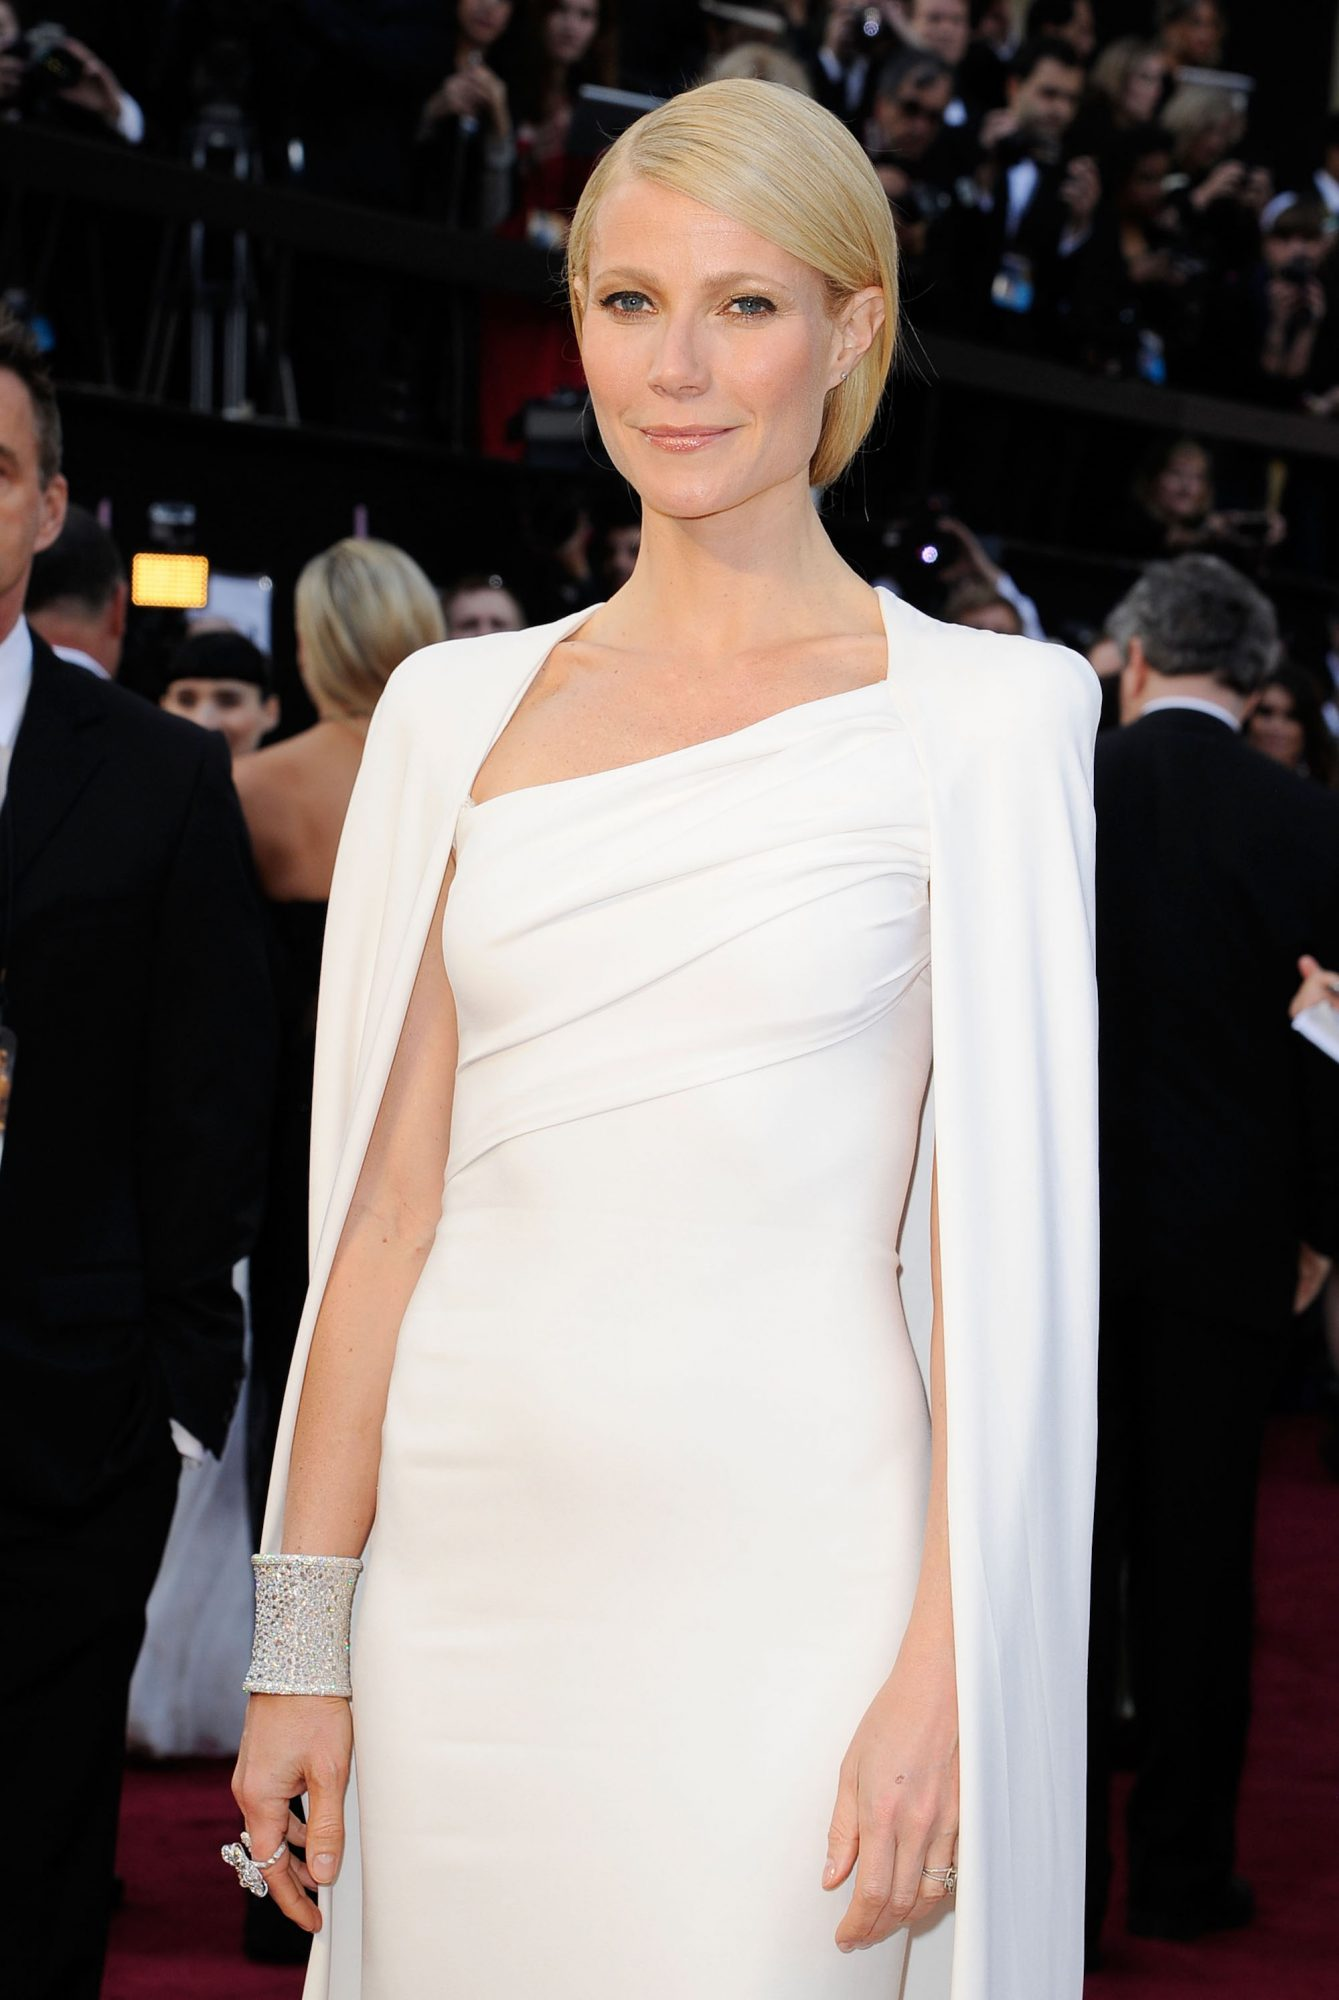 We Finally Have Photos of Gwyneth Paltrow's Valentino Wedding Gown, and They're Everything